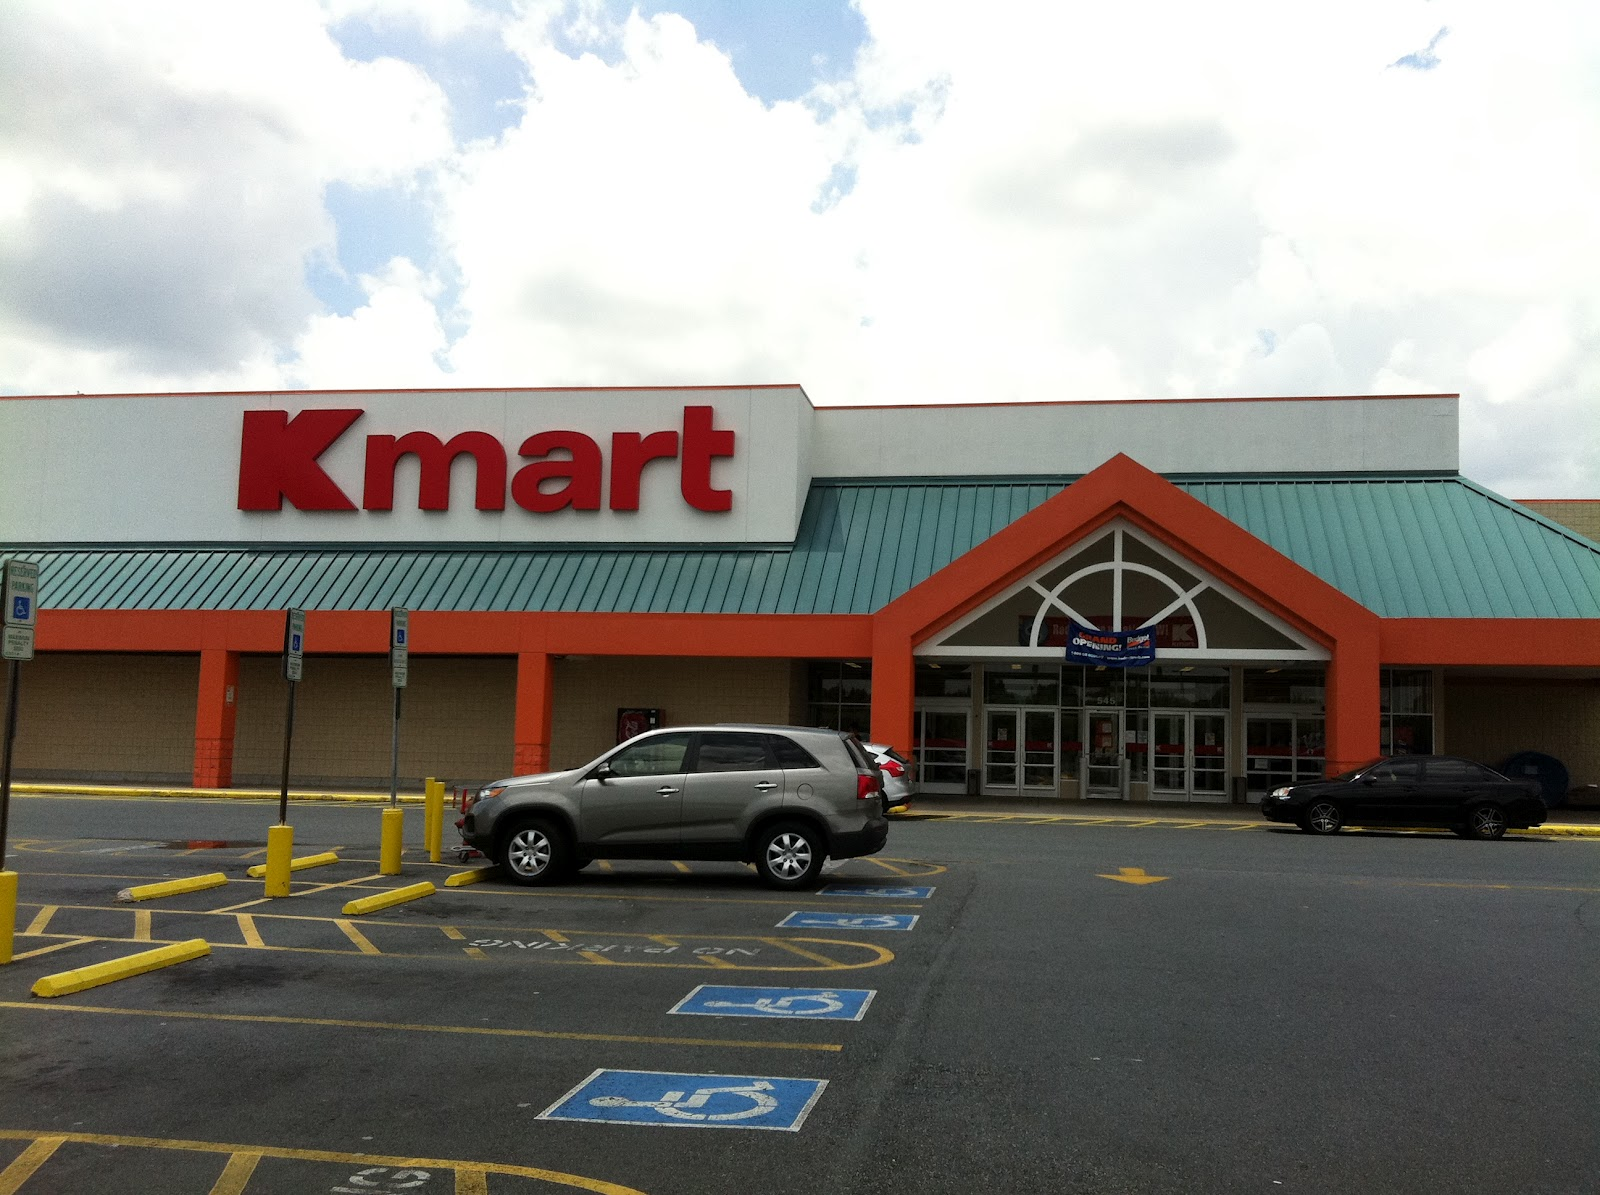 Kmart Corp. will close stores in 40 states and Puerto Rico, cutting about 22, positions, as part of its bankruptcy restructuring, the company announced Friday. The stores to be closed.